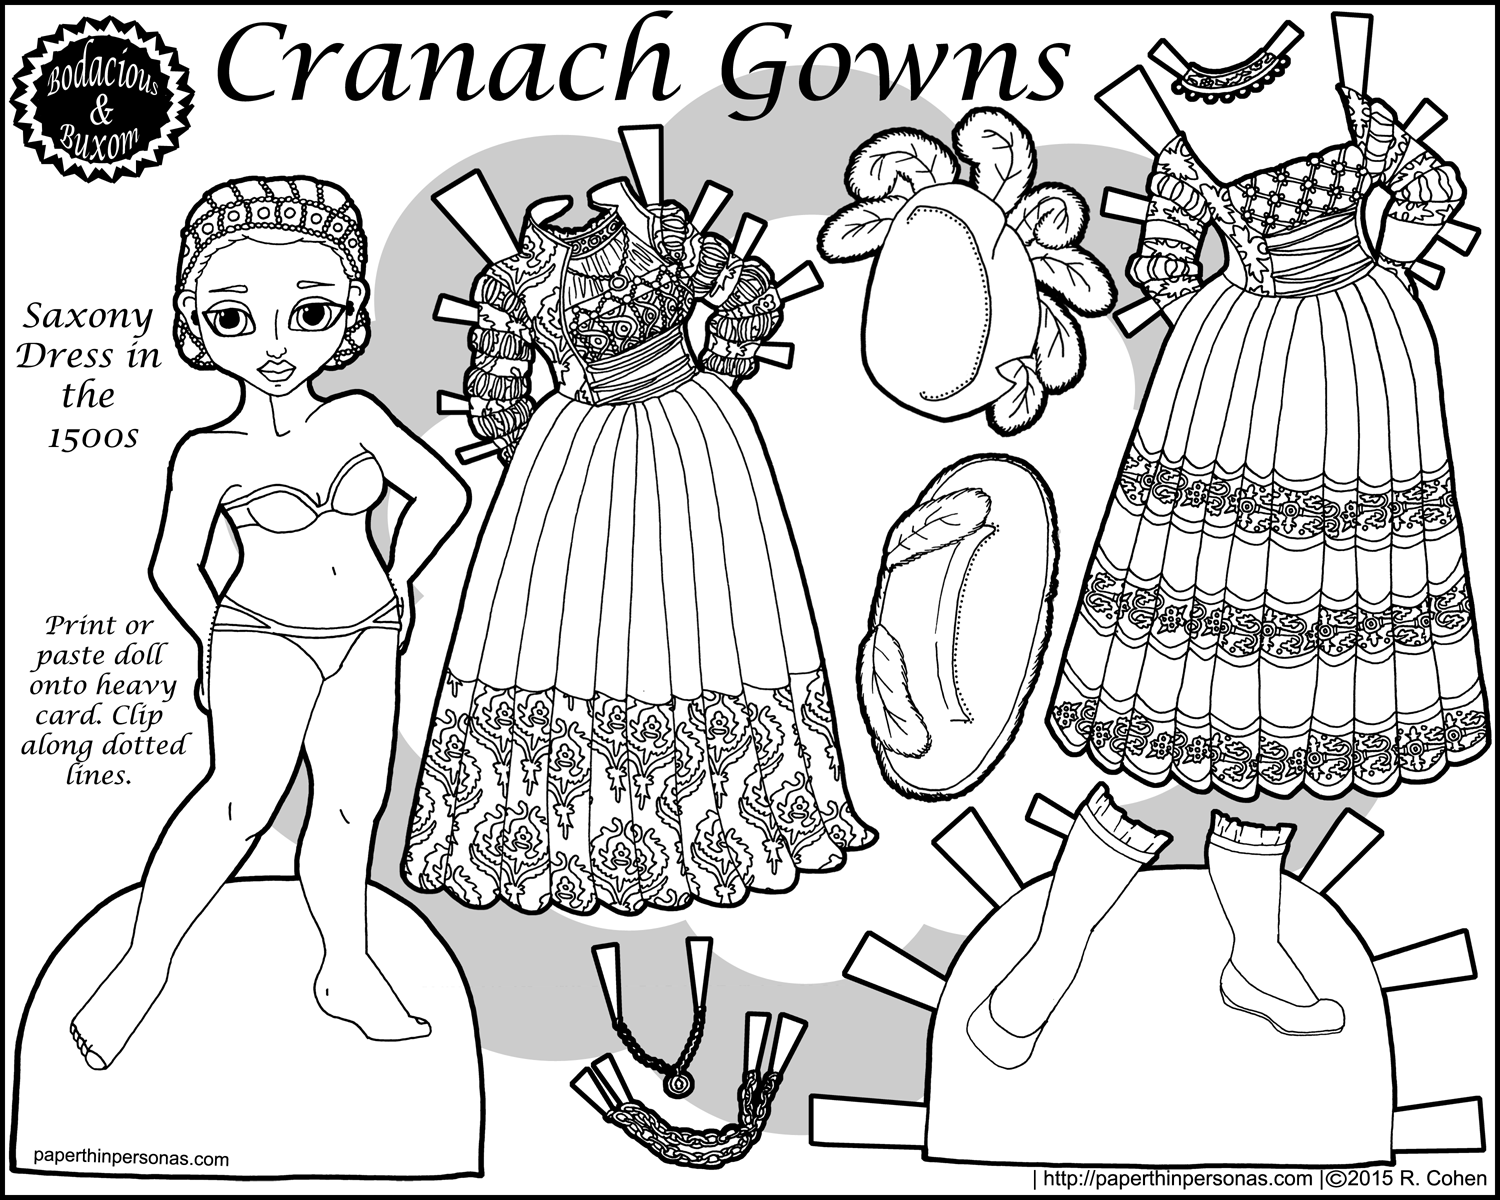 Cranach Gown for A Paper Doll (And Research About Them)